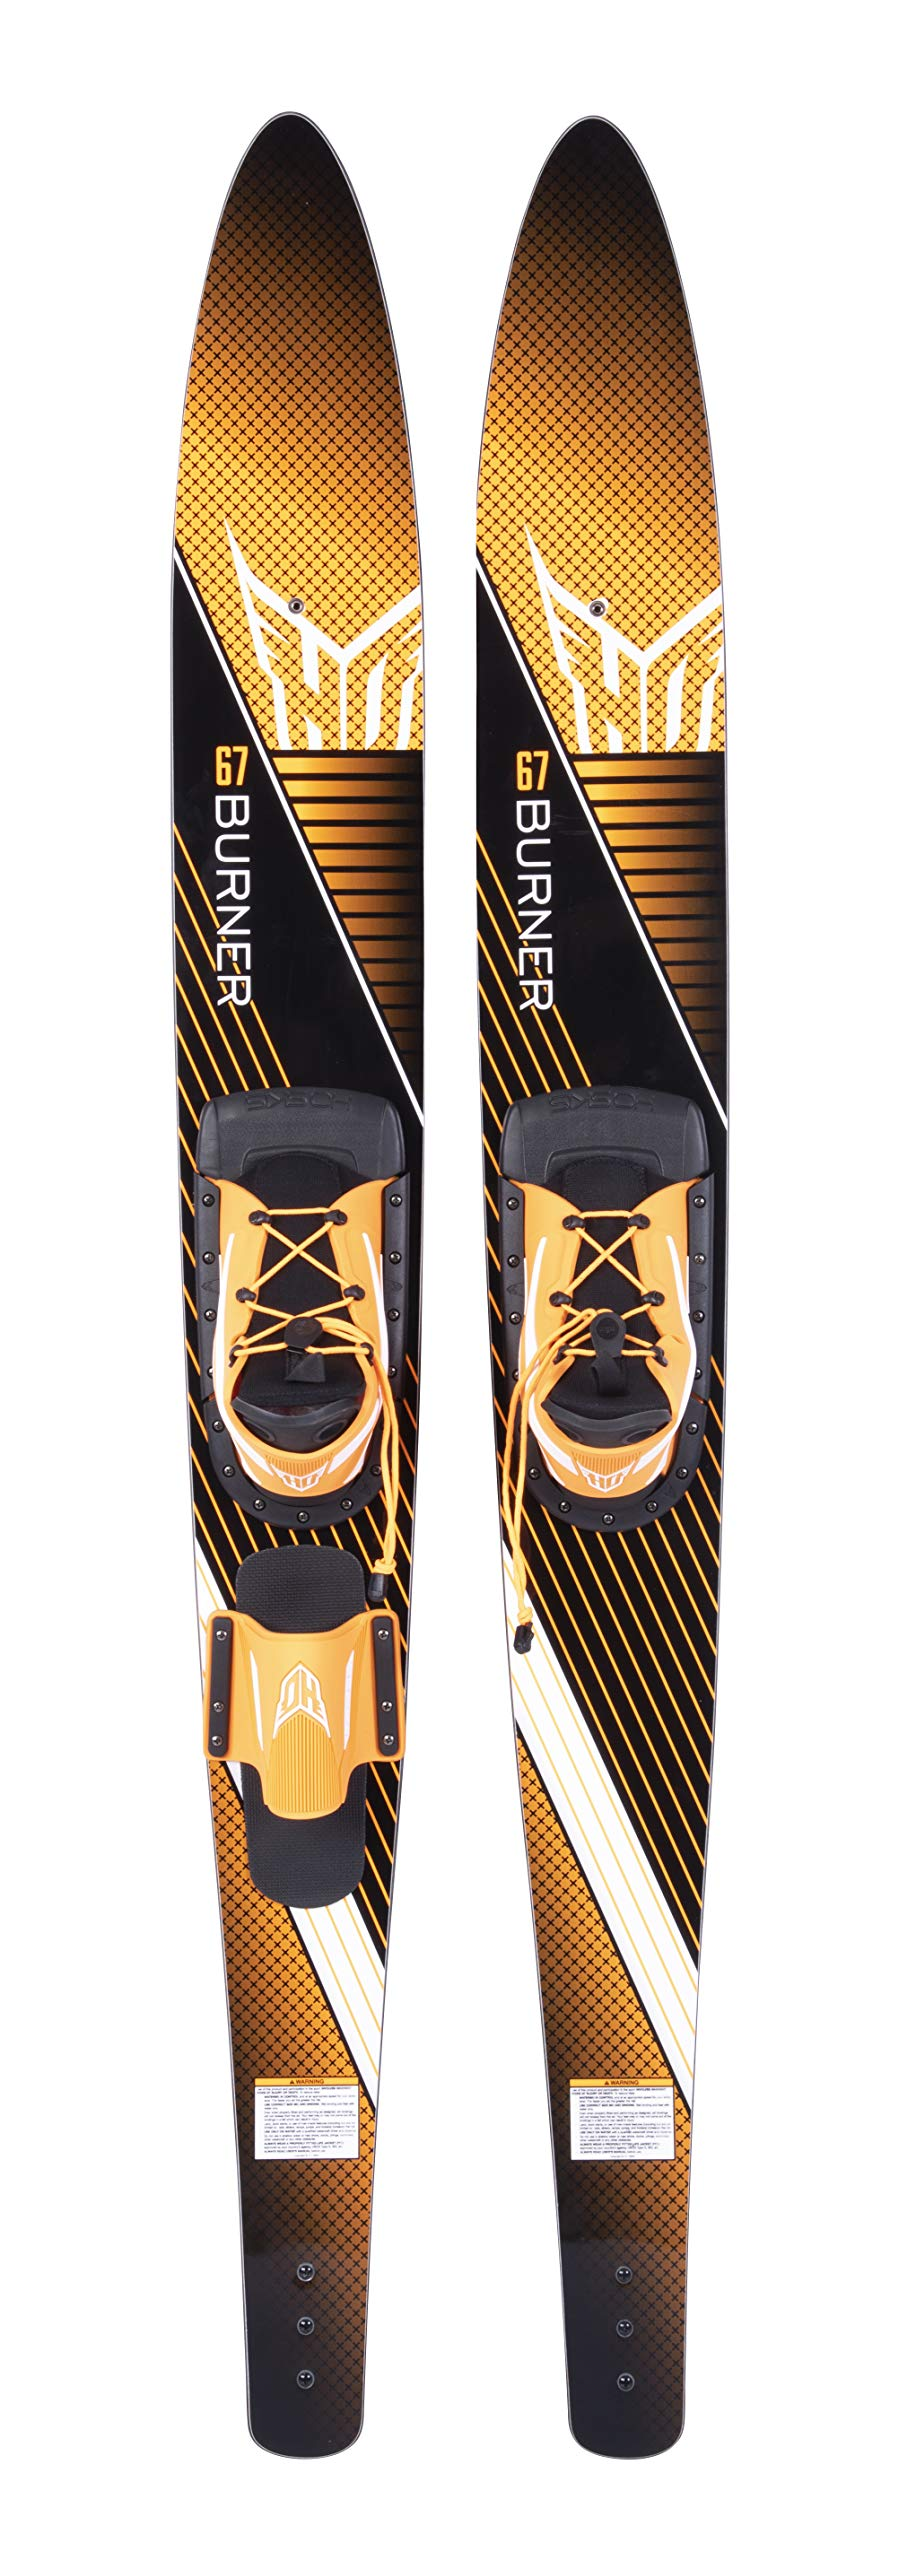 HO Sports 61 inch Burner Combo Sml Blaze/RTS Water Skis